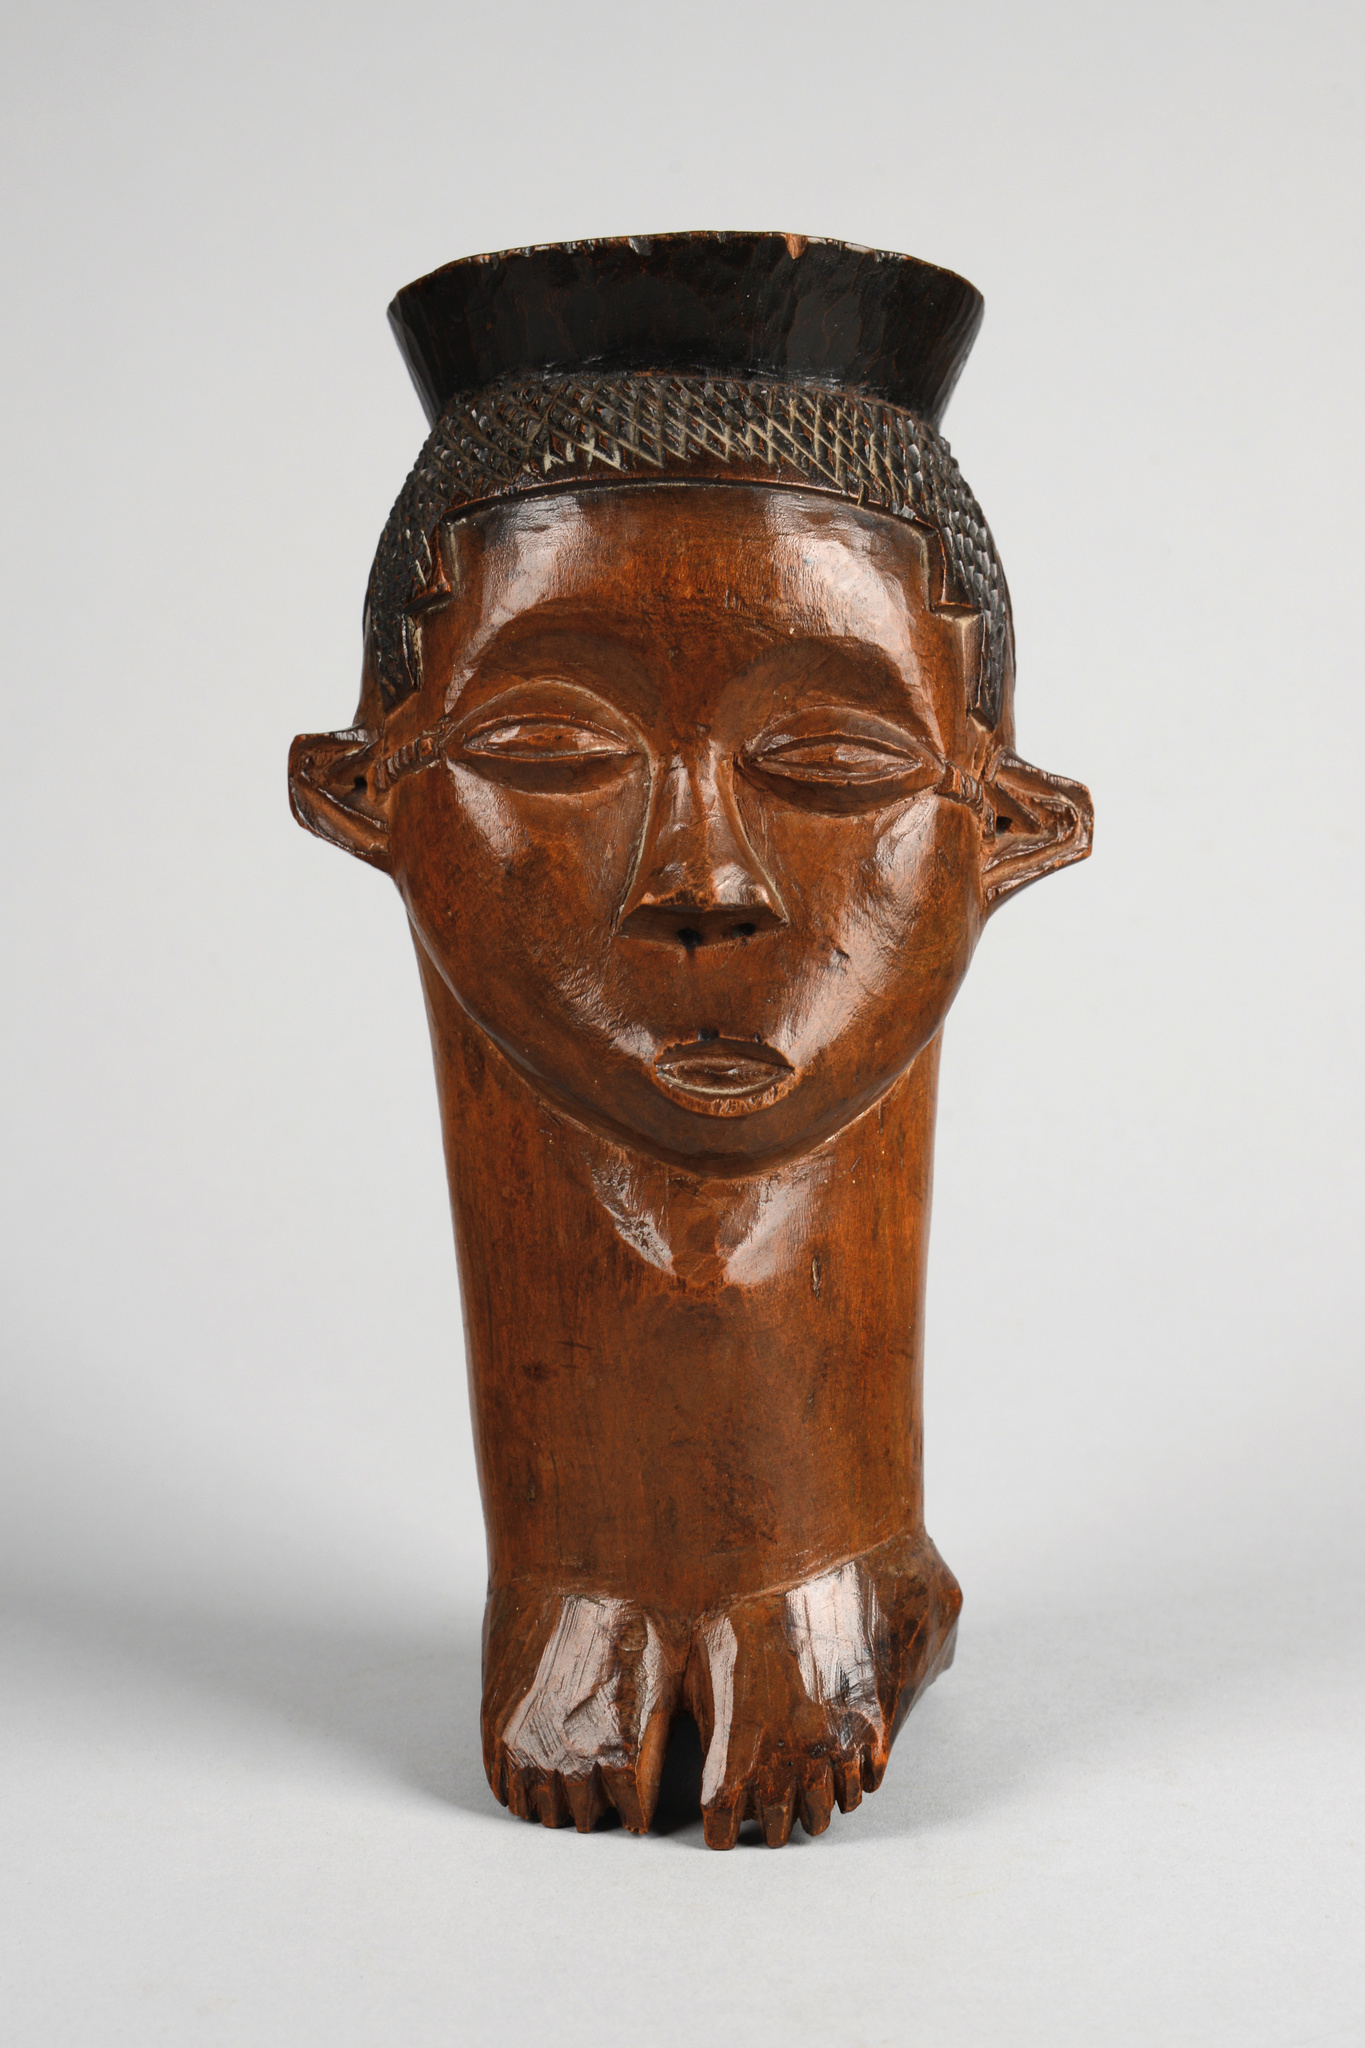 Anthropomorphic palm wine cup